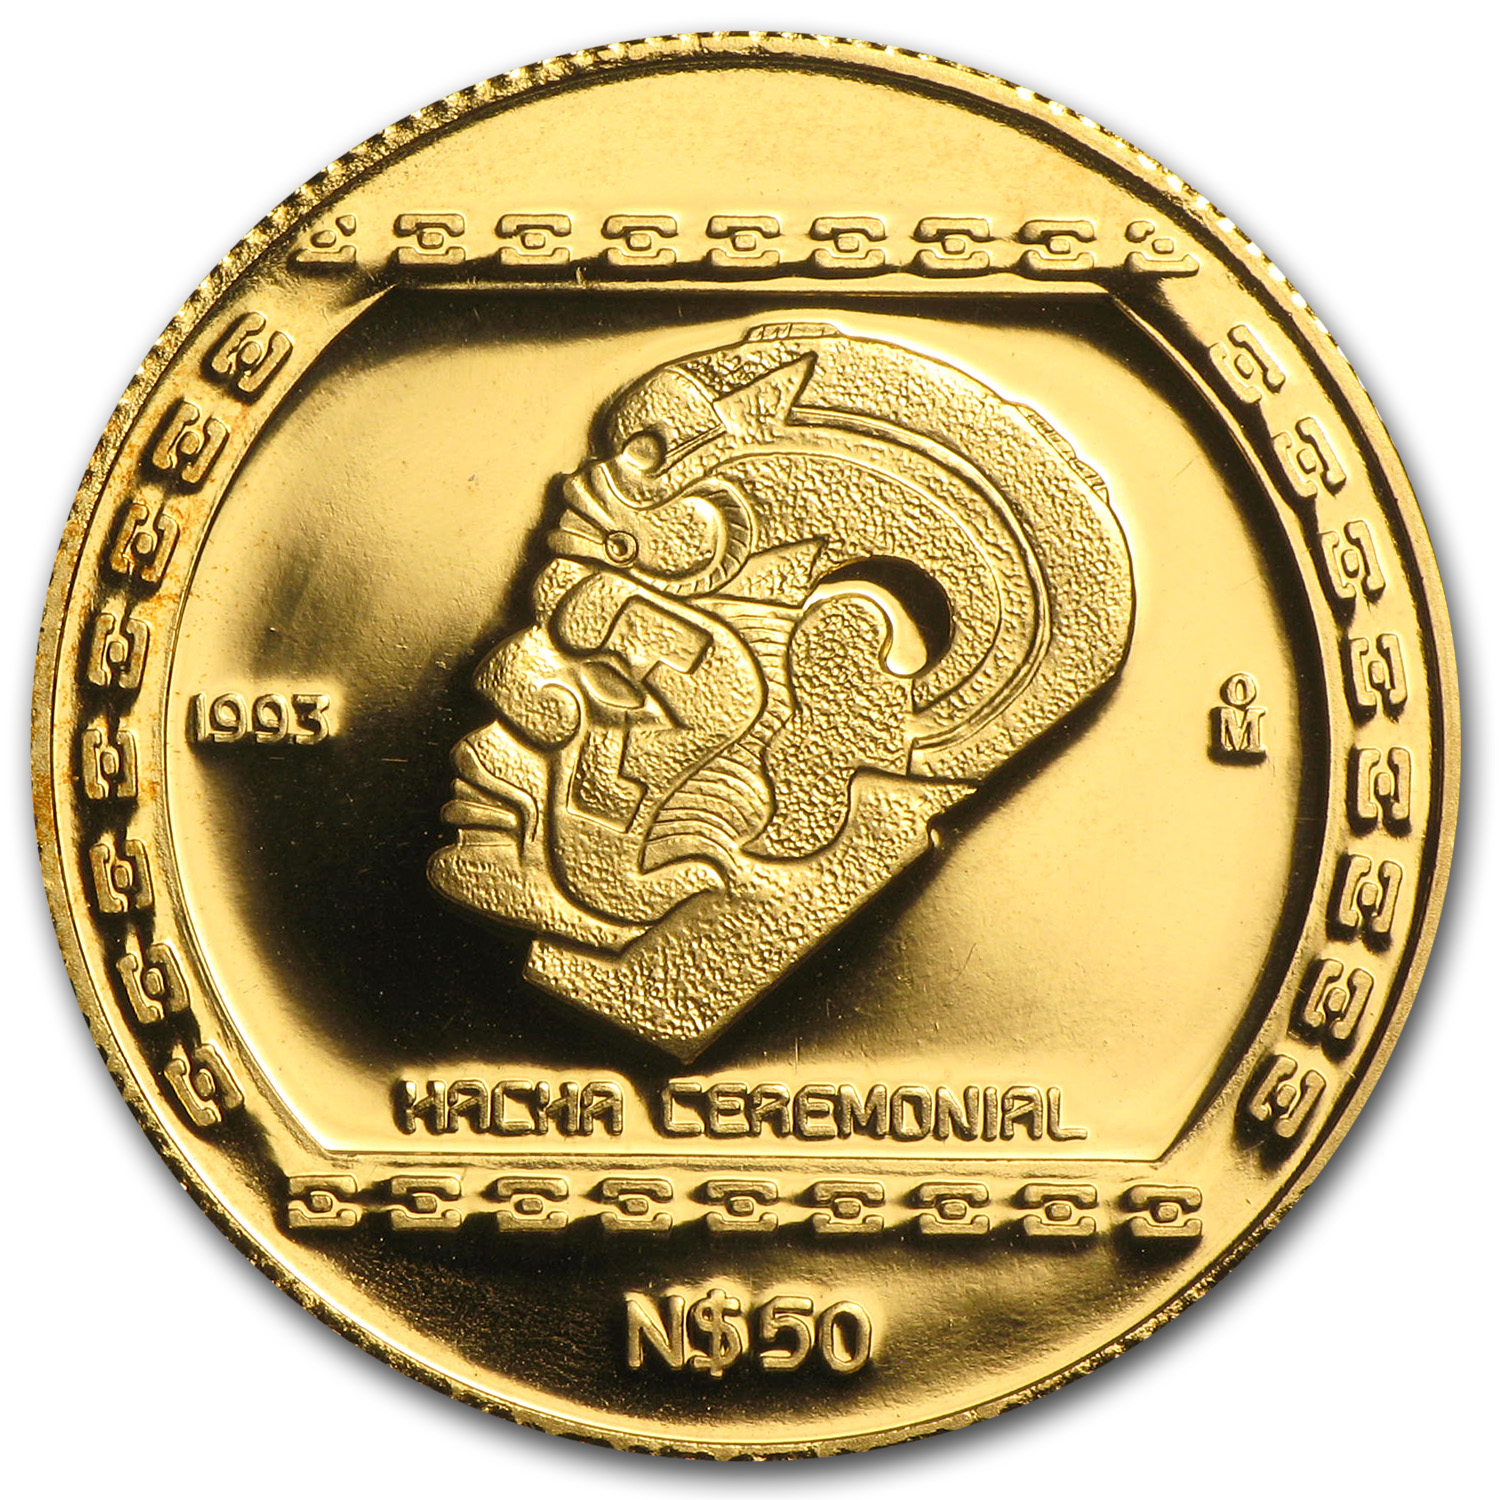 1993 Mexico 50 Pesos Gold Hacha Ceremonial Proof